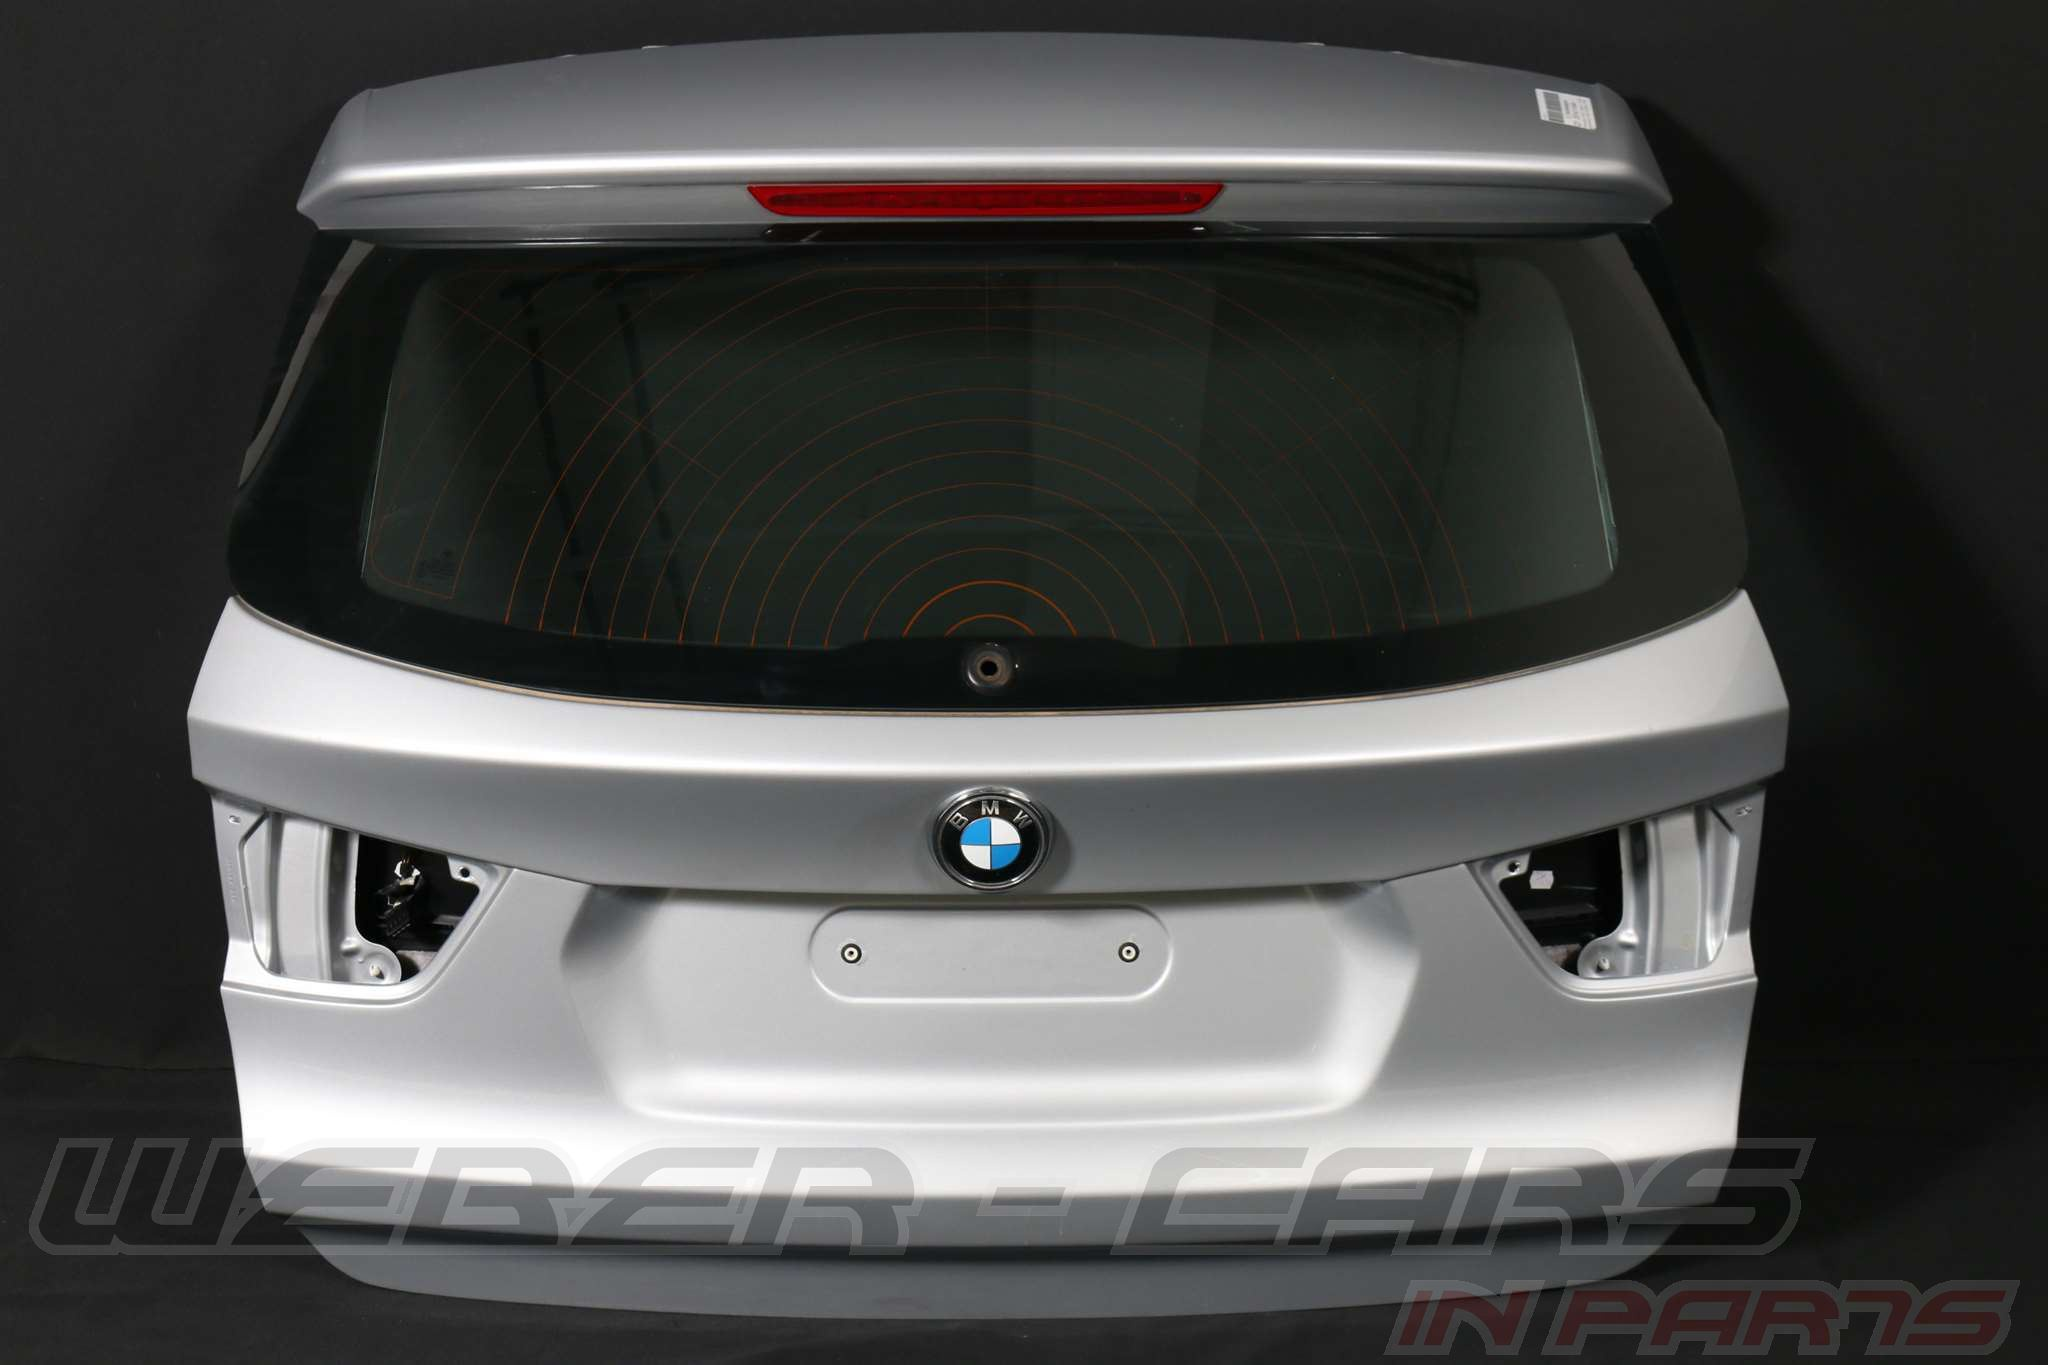 orig bmw x3 f25 heckklappe silber kofferraum heckdeckel deckel rear lid ebay. Black Bedroom Furniture Sets. Home Design Ideas